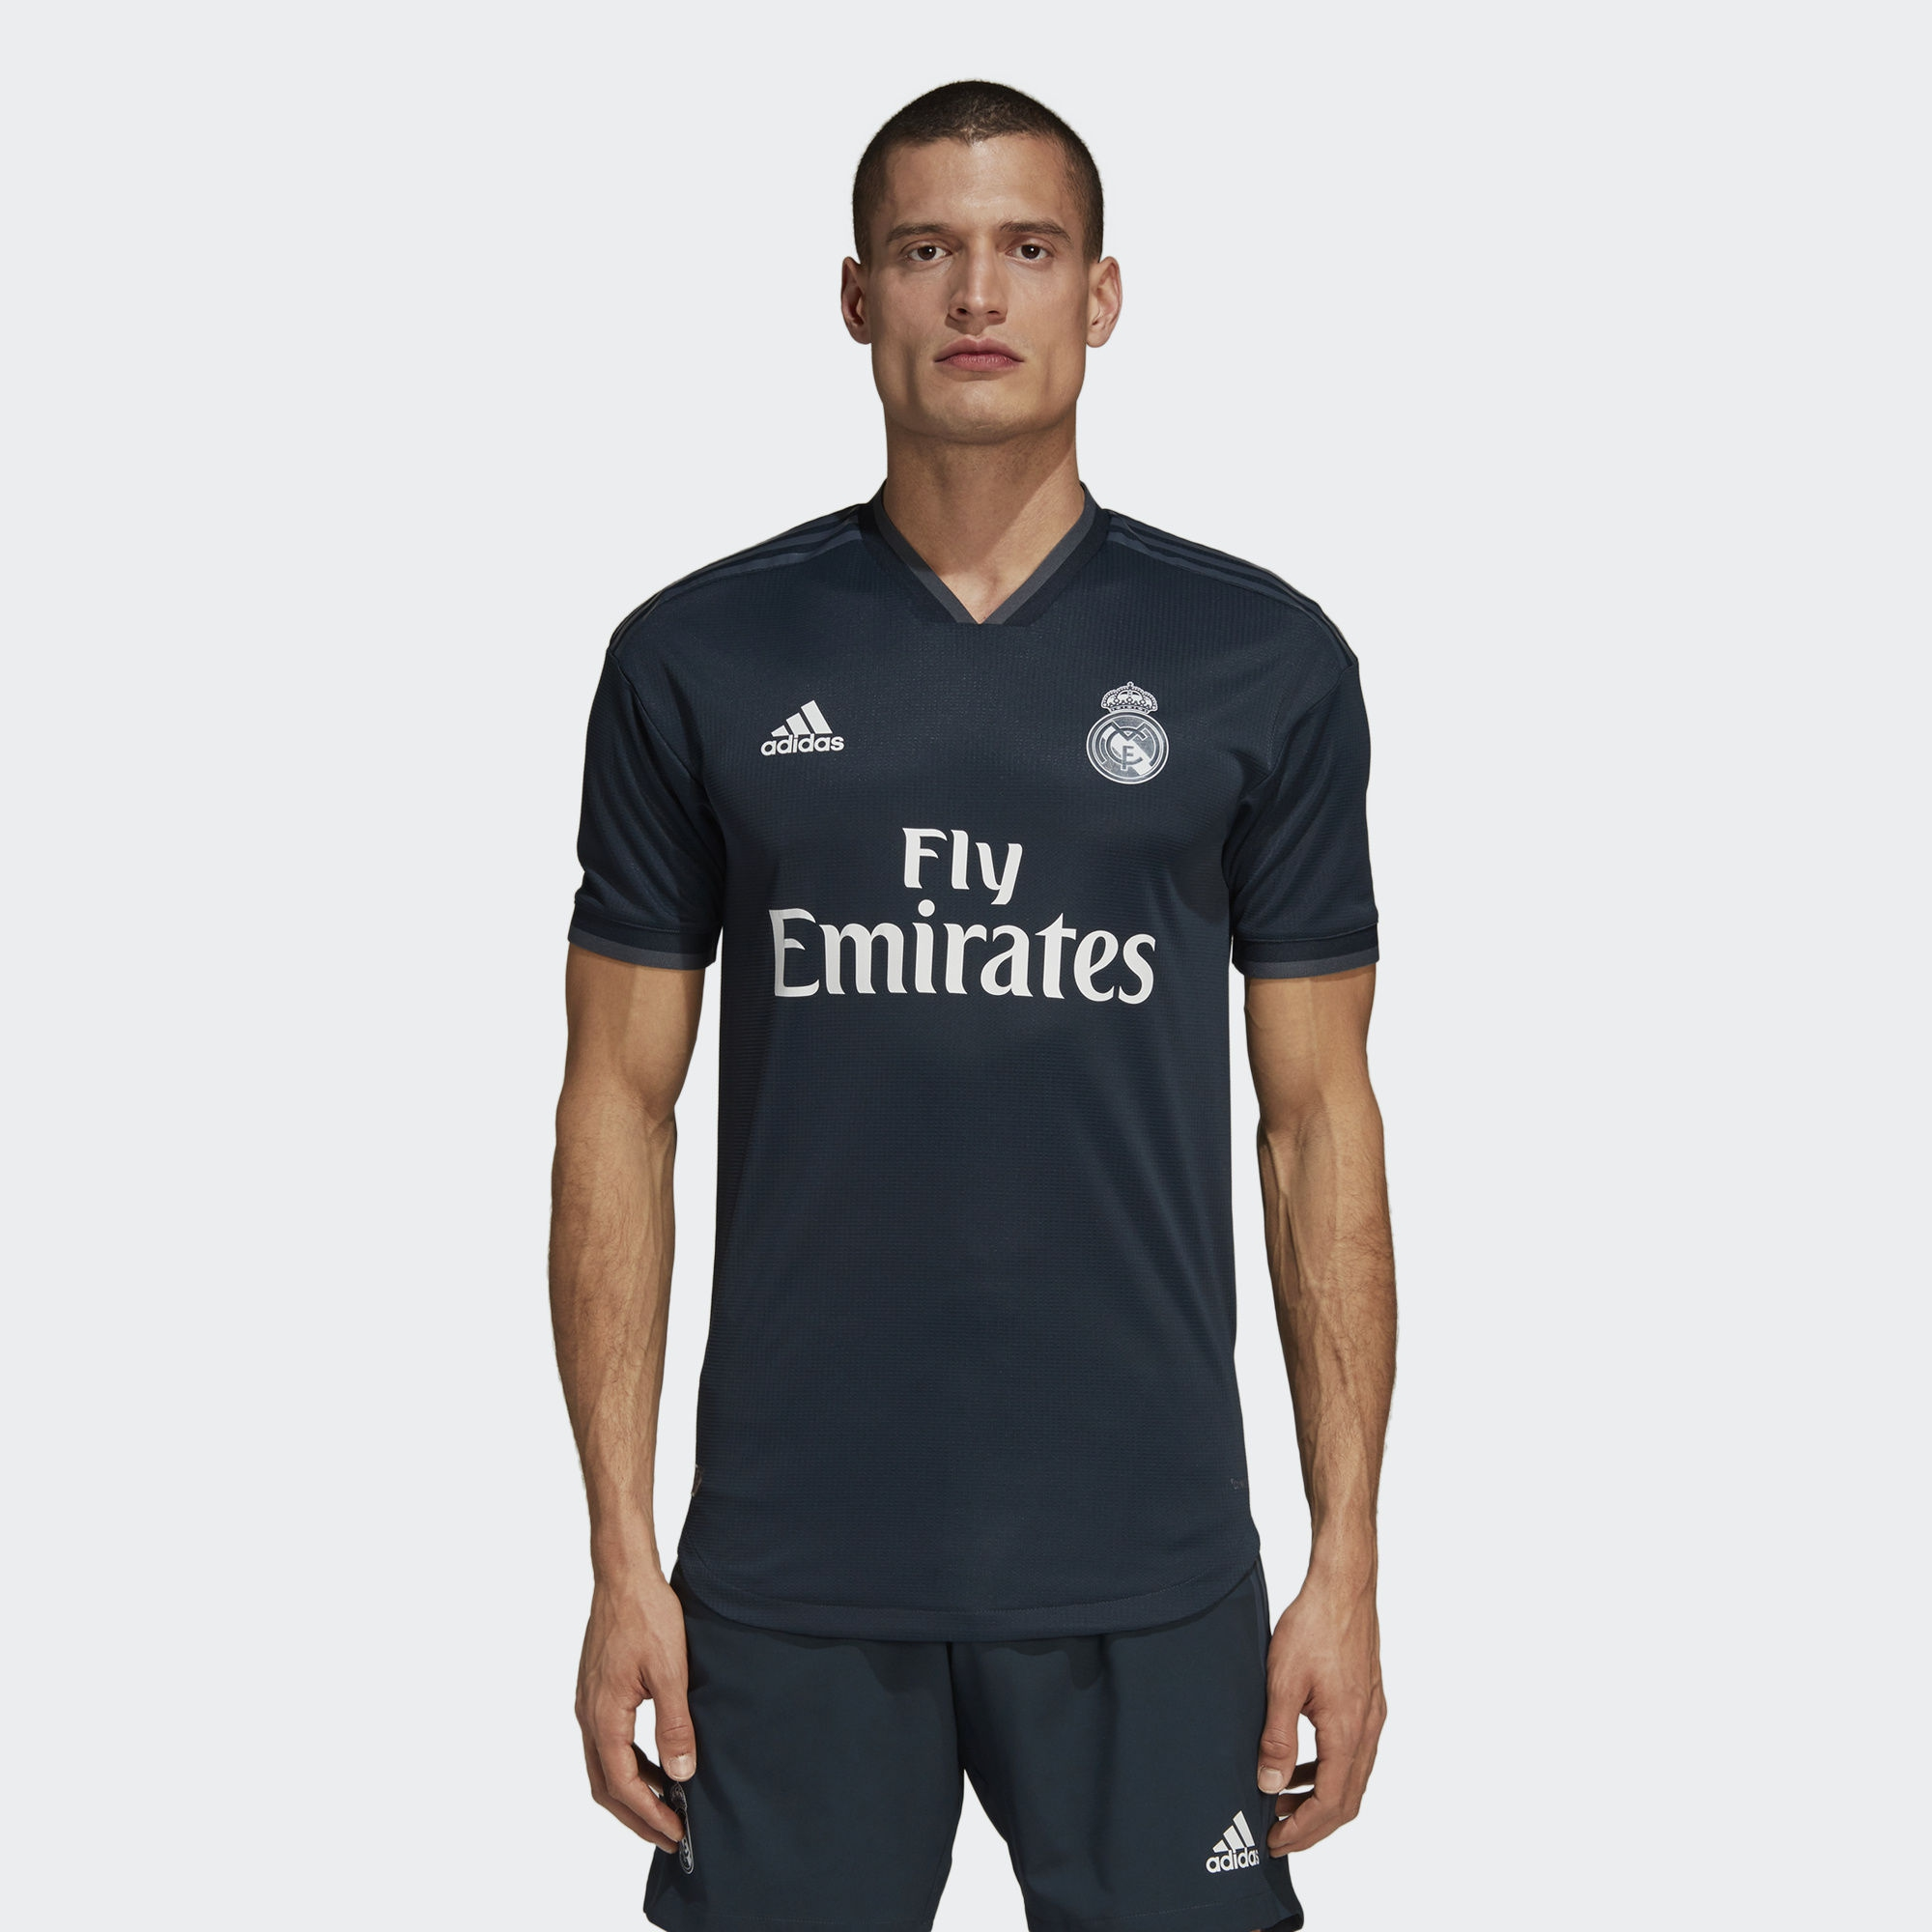 huge discount 213fa 233b8 Jersey- Real Madrid Away Jersey 2018/2019 Football Jersey Online Malaysia |  Je